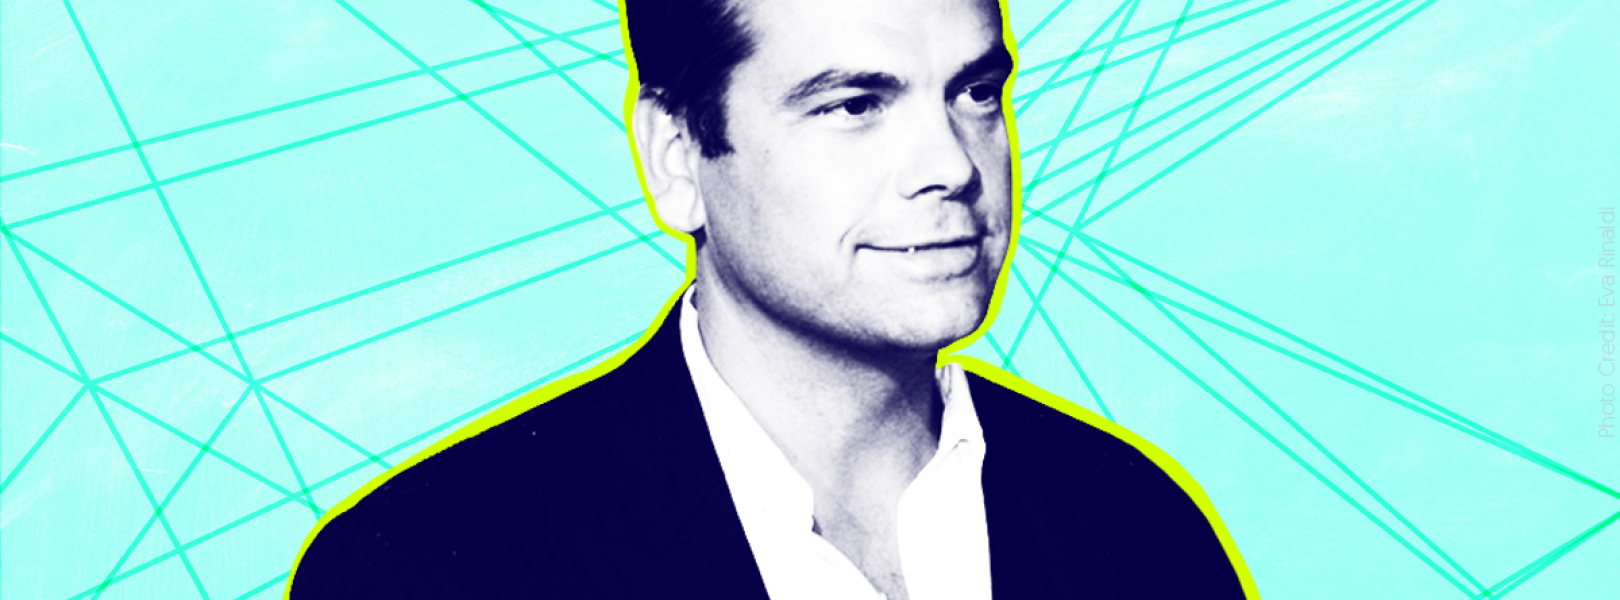 Lachlan-Murdoch-wants-fox-news-critics-more-tolerant.png